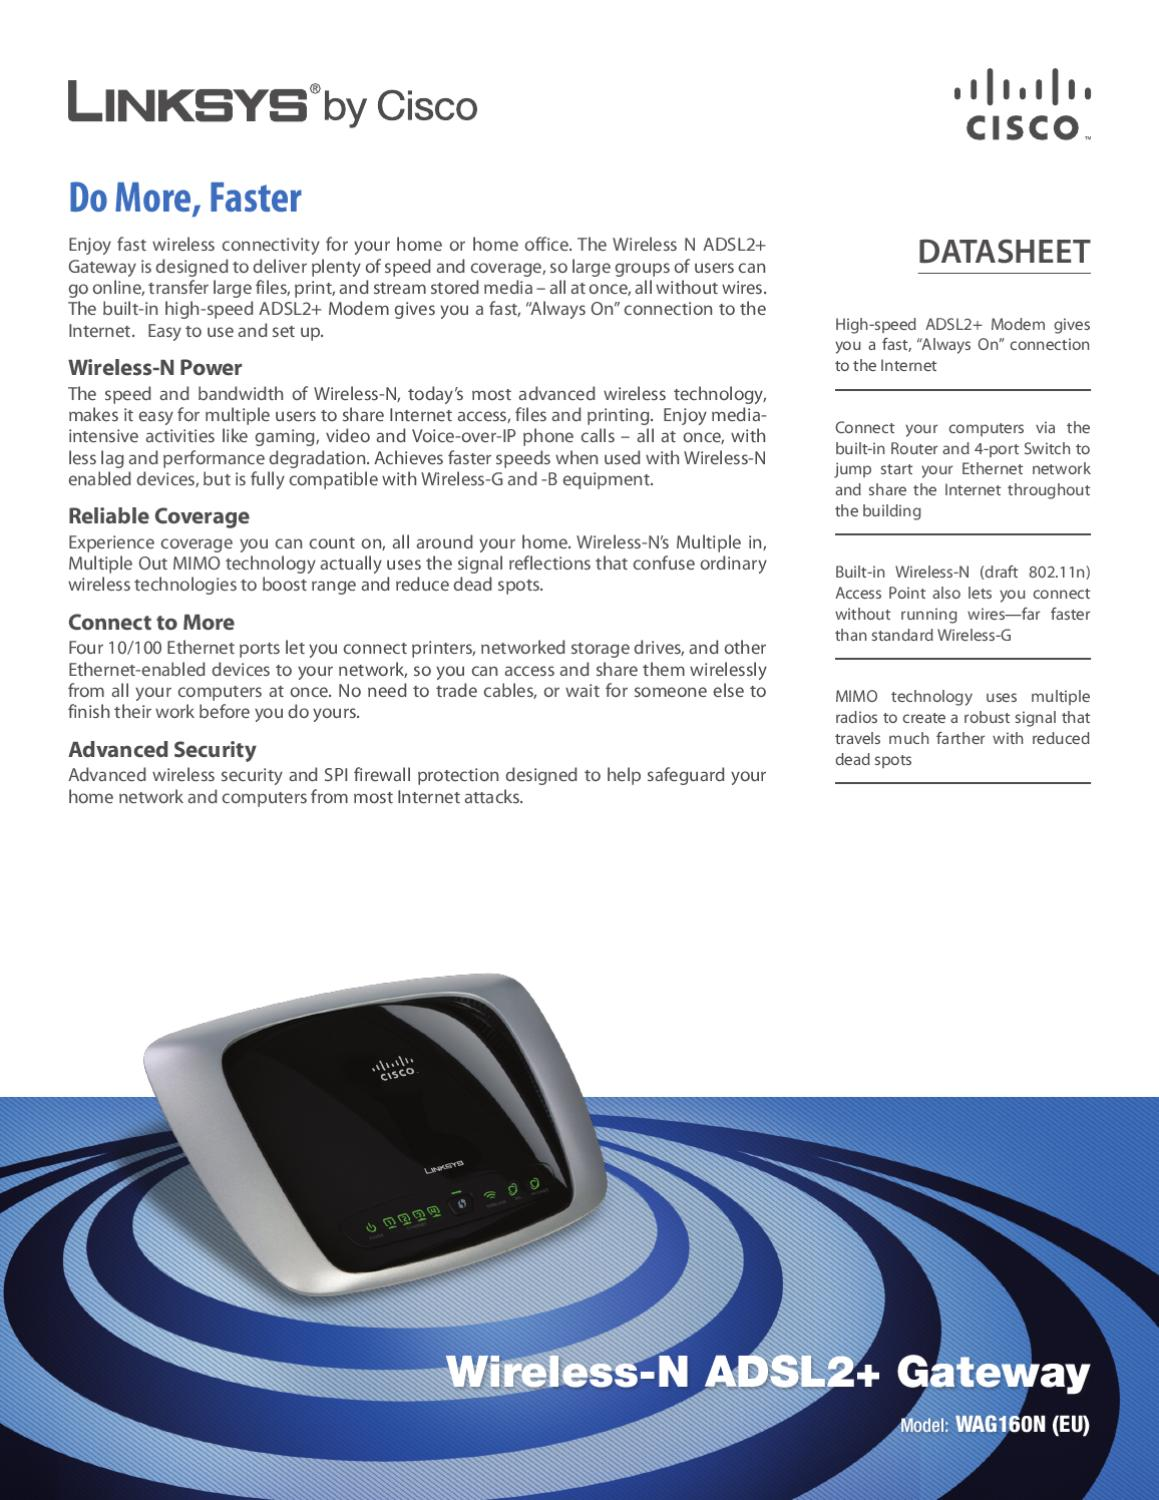 Router Com Modem Rdis Linksys Wag160n E1 Manual Sonigate By Wireless N Home Diagram Issuu